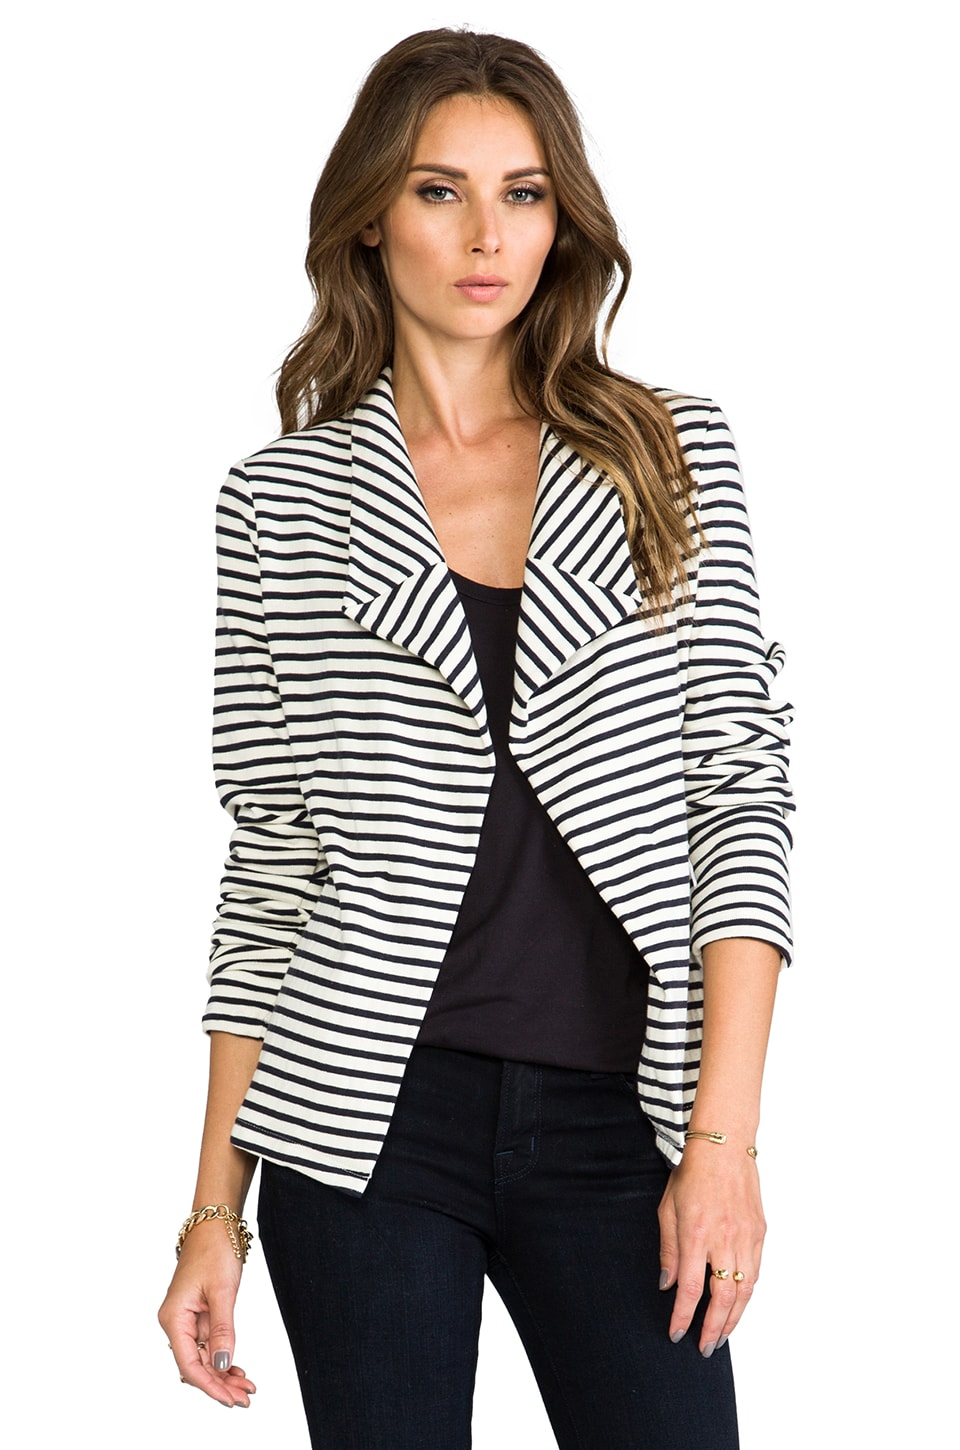 Whetherly Fuzzy Knit Bella Blazer in Navy/Creme